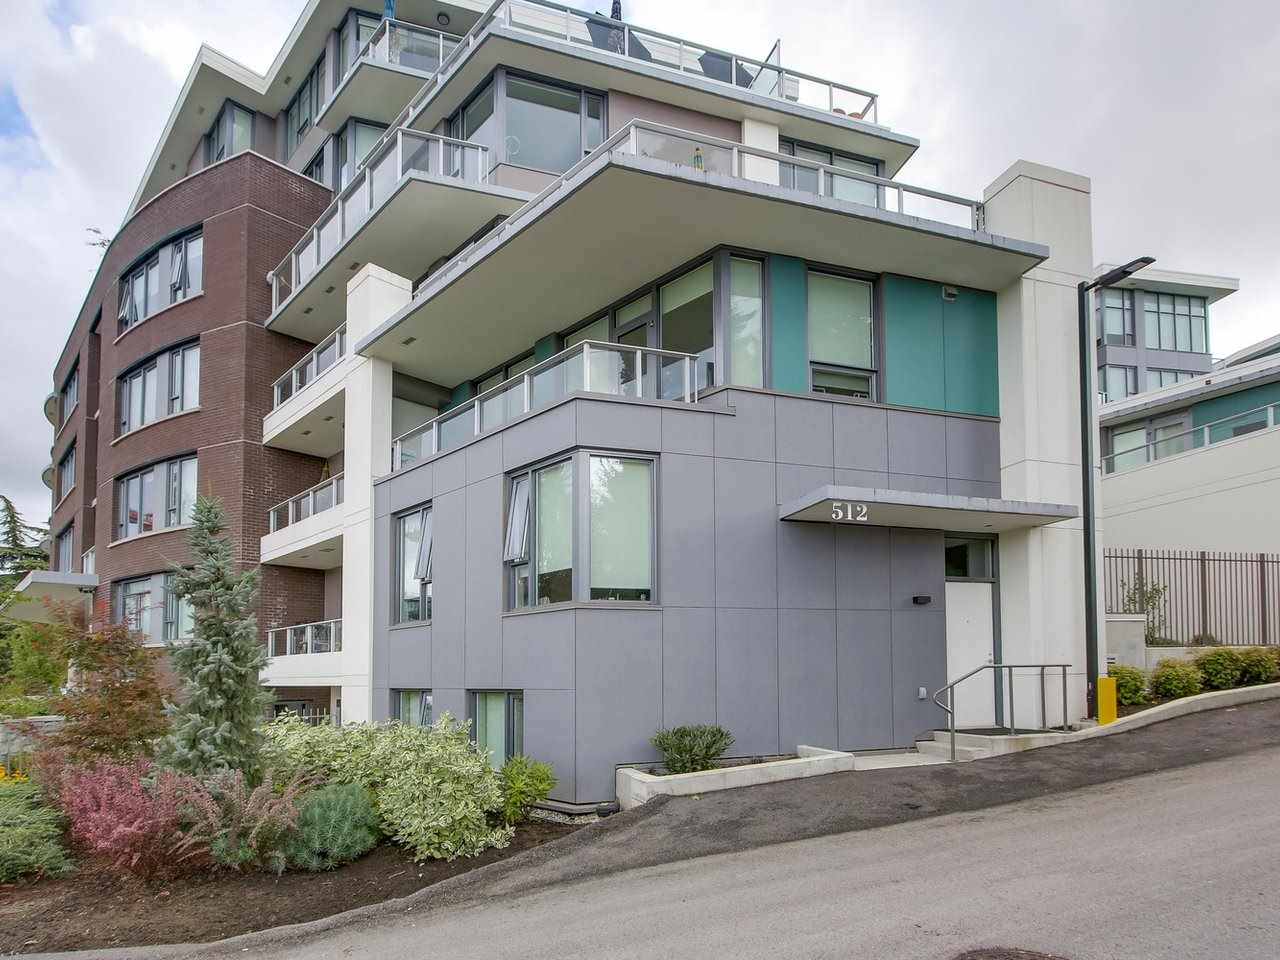 Corner unit Concrete Townhouse in the best location of Cambie Corridor on the quiet side of the street and right across QE Park.  This 2 year old 3 level concrete townhouse has 3 Beds + 4 Baths and comes with private garage + additional parking and storage.  High end appliances and luxurious interior finishing with own heat pump in the unit.  Beautiful view of downtown from upstairs living room.  Few minutes walk to King Edward Skytrain station and close to shops and many other amenities.  School catchment for Emily Carr Elementary & Eric Hamber Secondary School.